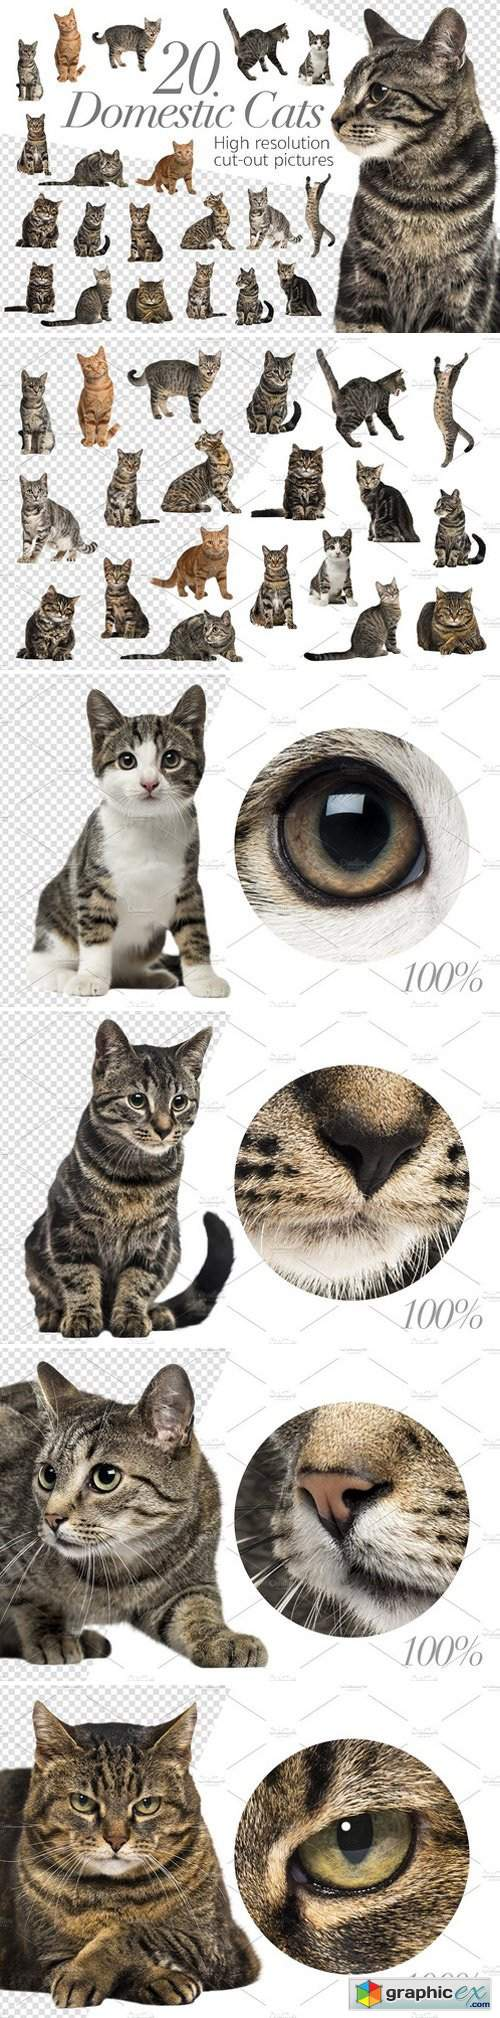 20 Domestic Cats - Cut-out Pictures